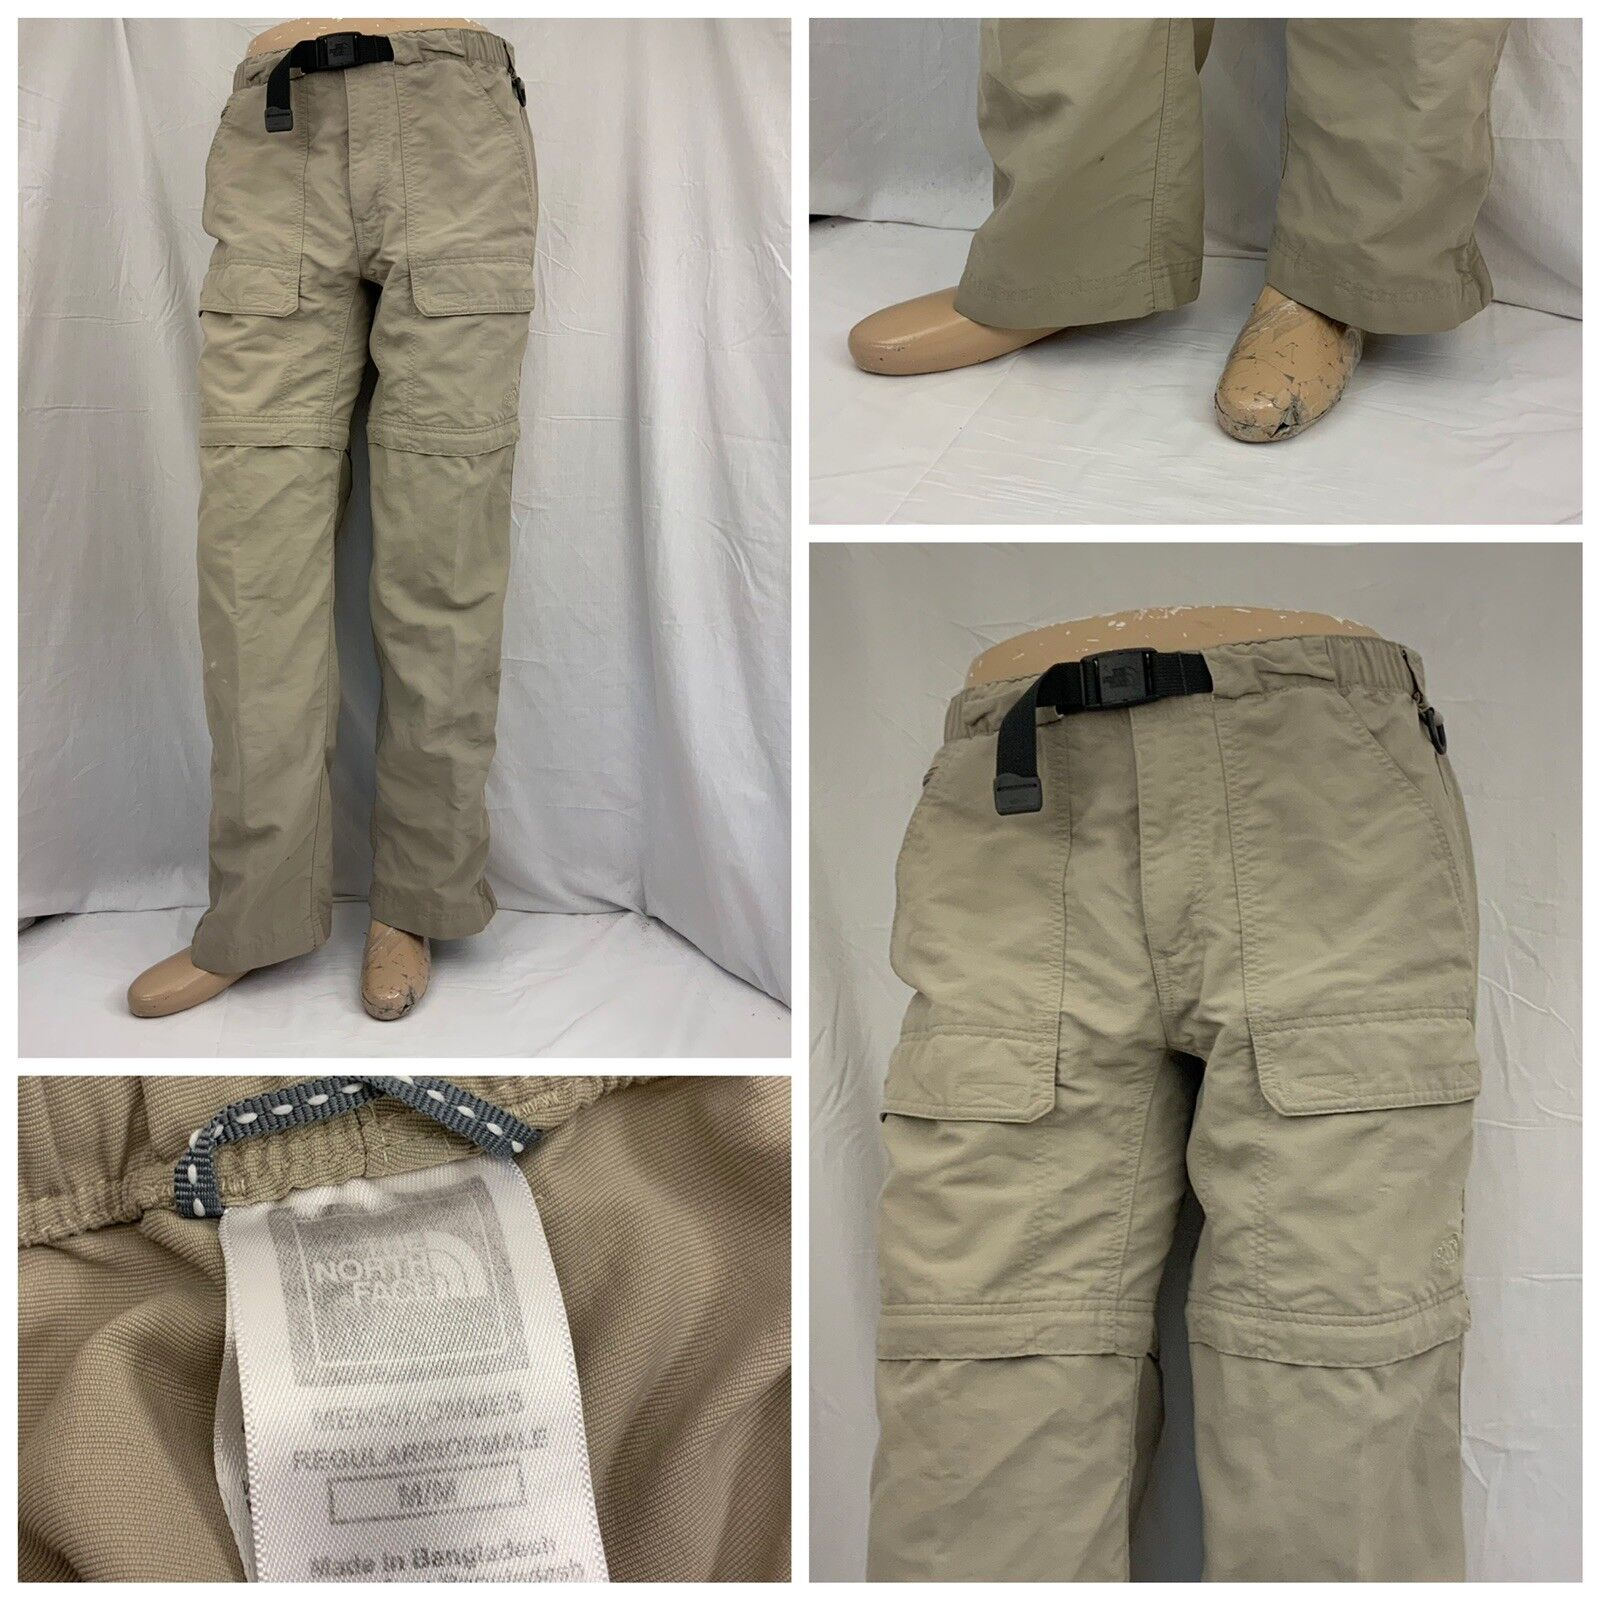 The North Face Pants M Tan 100% Nylon  Hiking Congreenible Cargo GUC YGI Y8-119  on sale